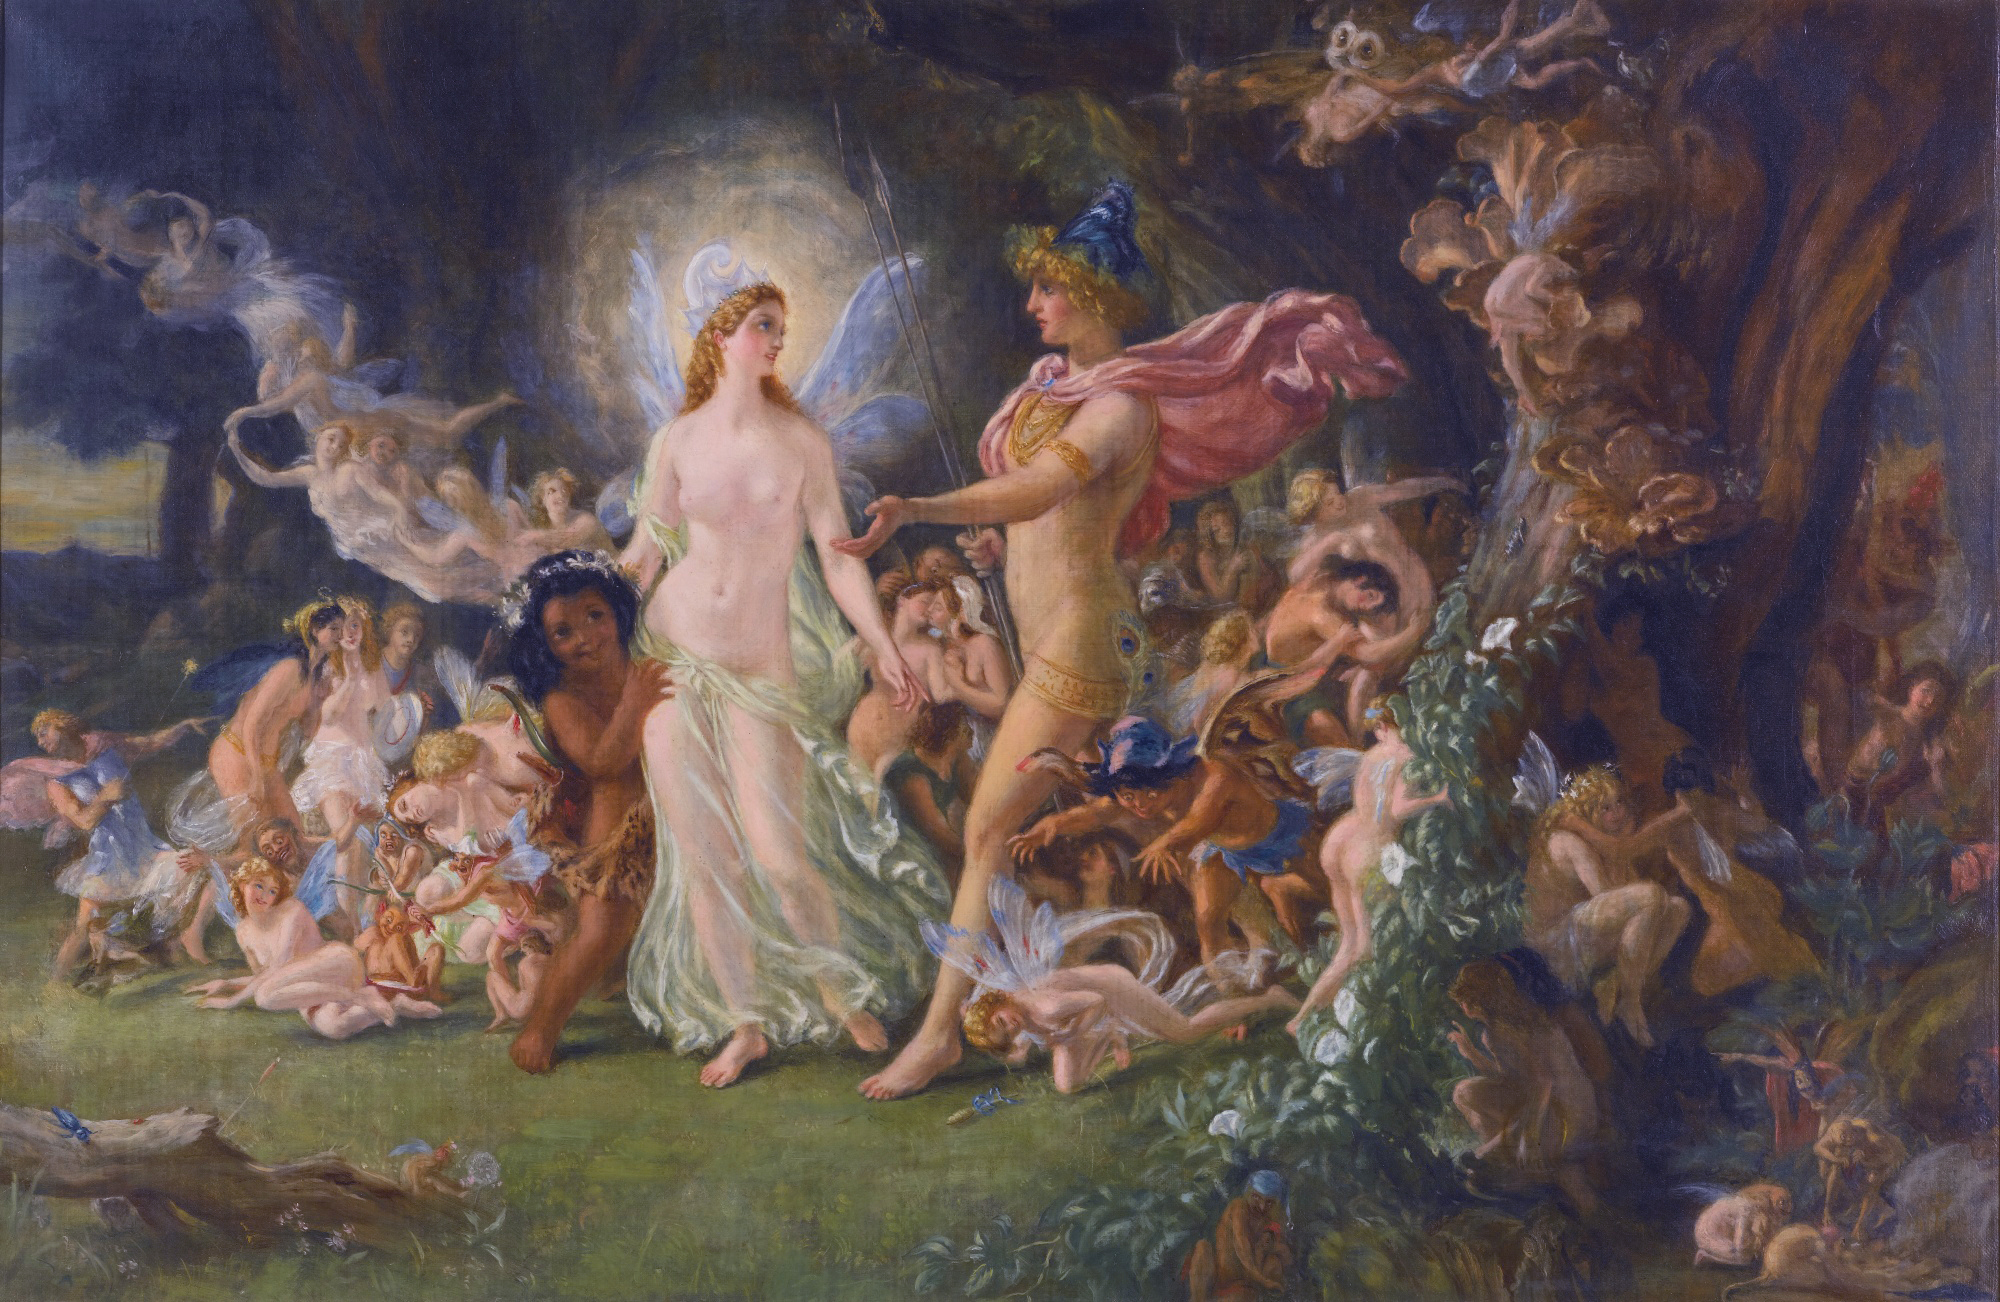 Les héros shakespeariens dans la peinture Study_for_The_Quarrel_of_Oberon_and_Titania